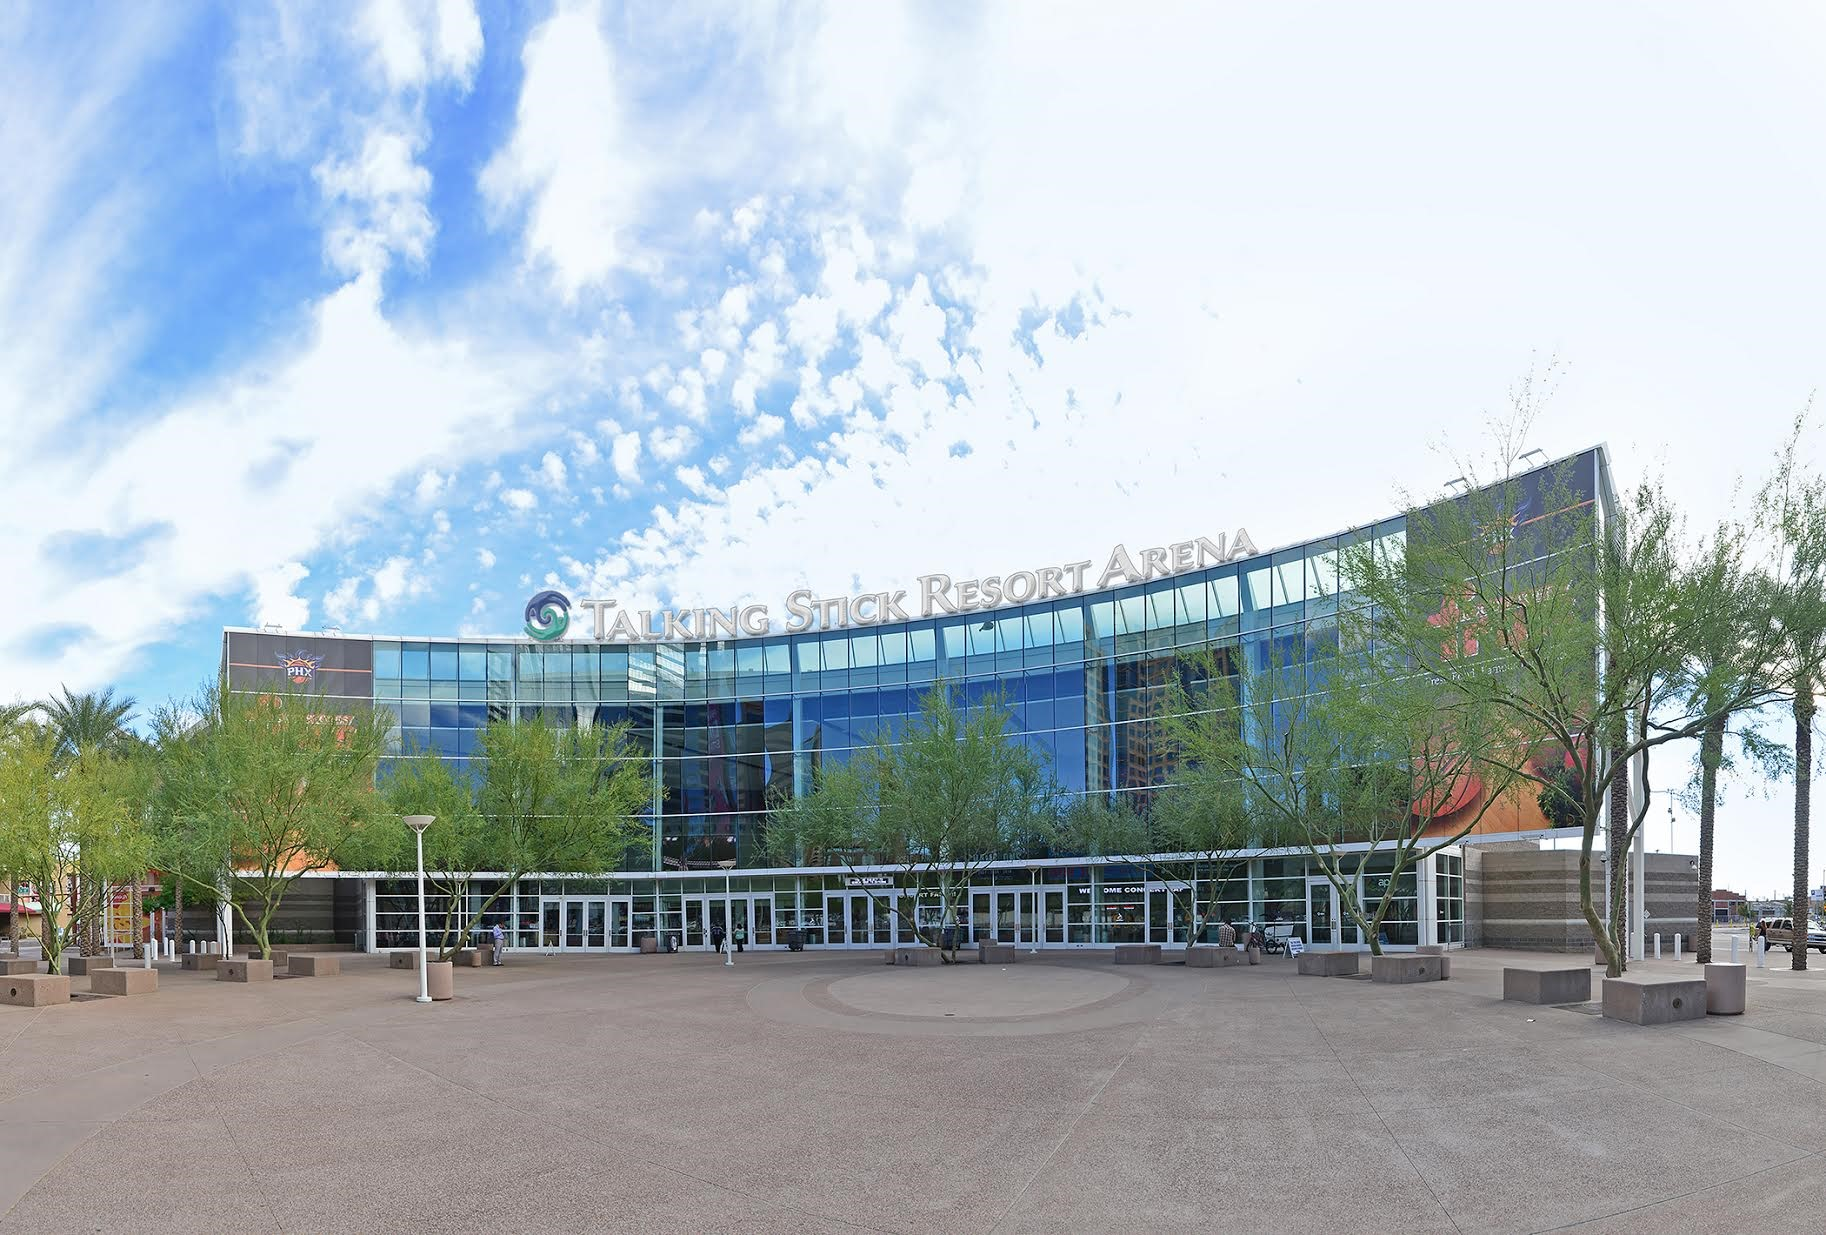 Talking Stick Resort Stadium.jpg